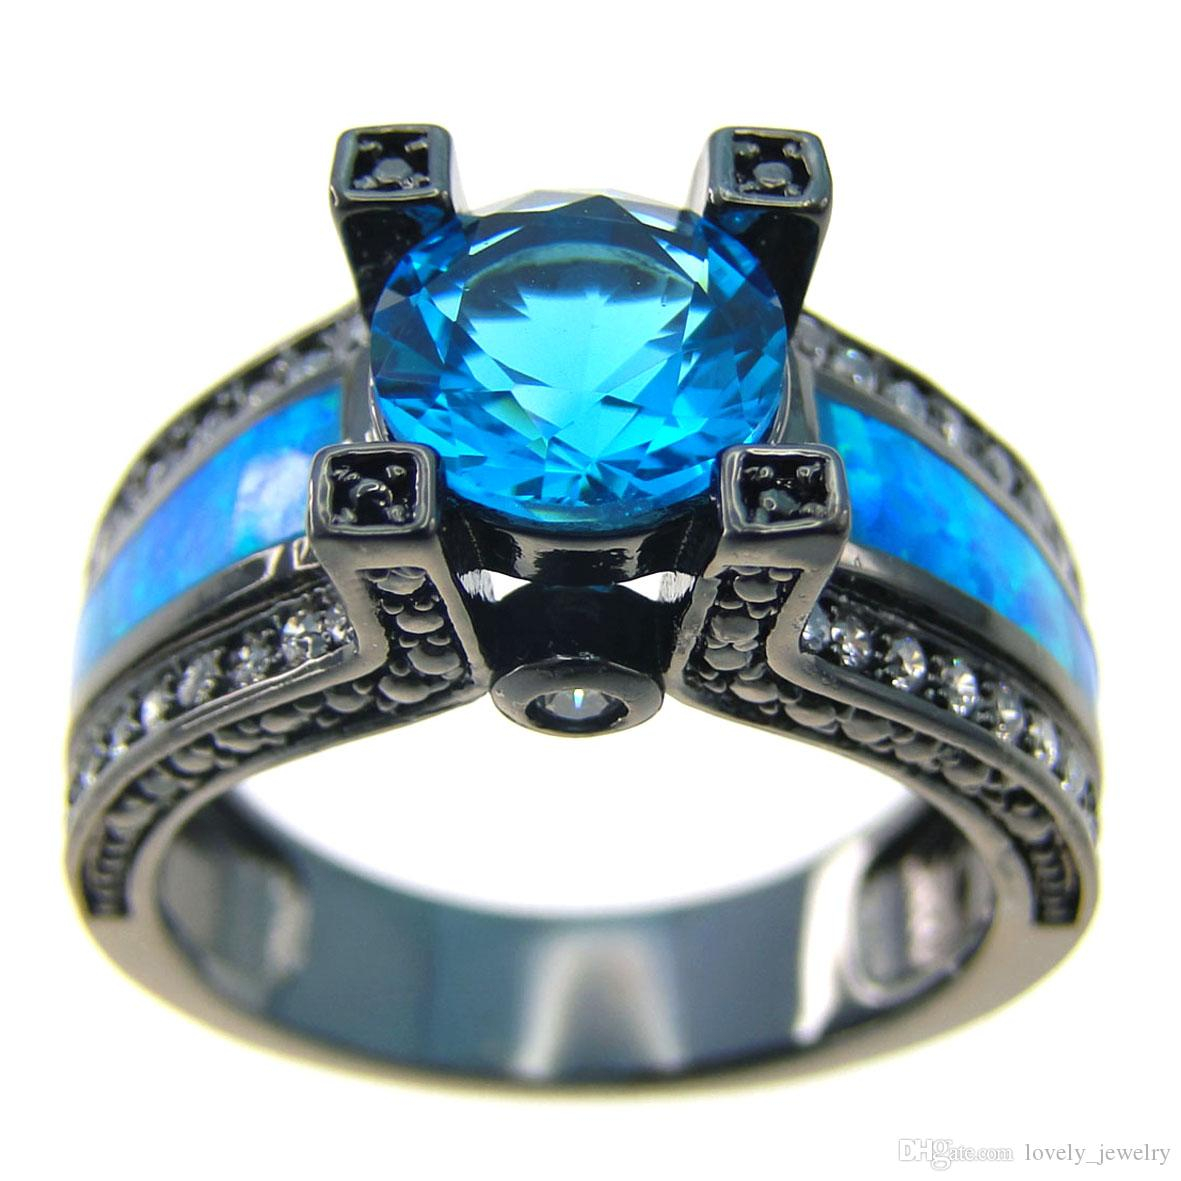 2017 New Blue Opal Female Ring Blue Round Zircon Black Gold Filled